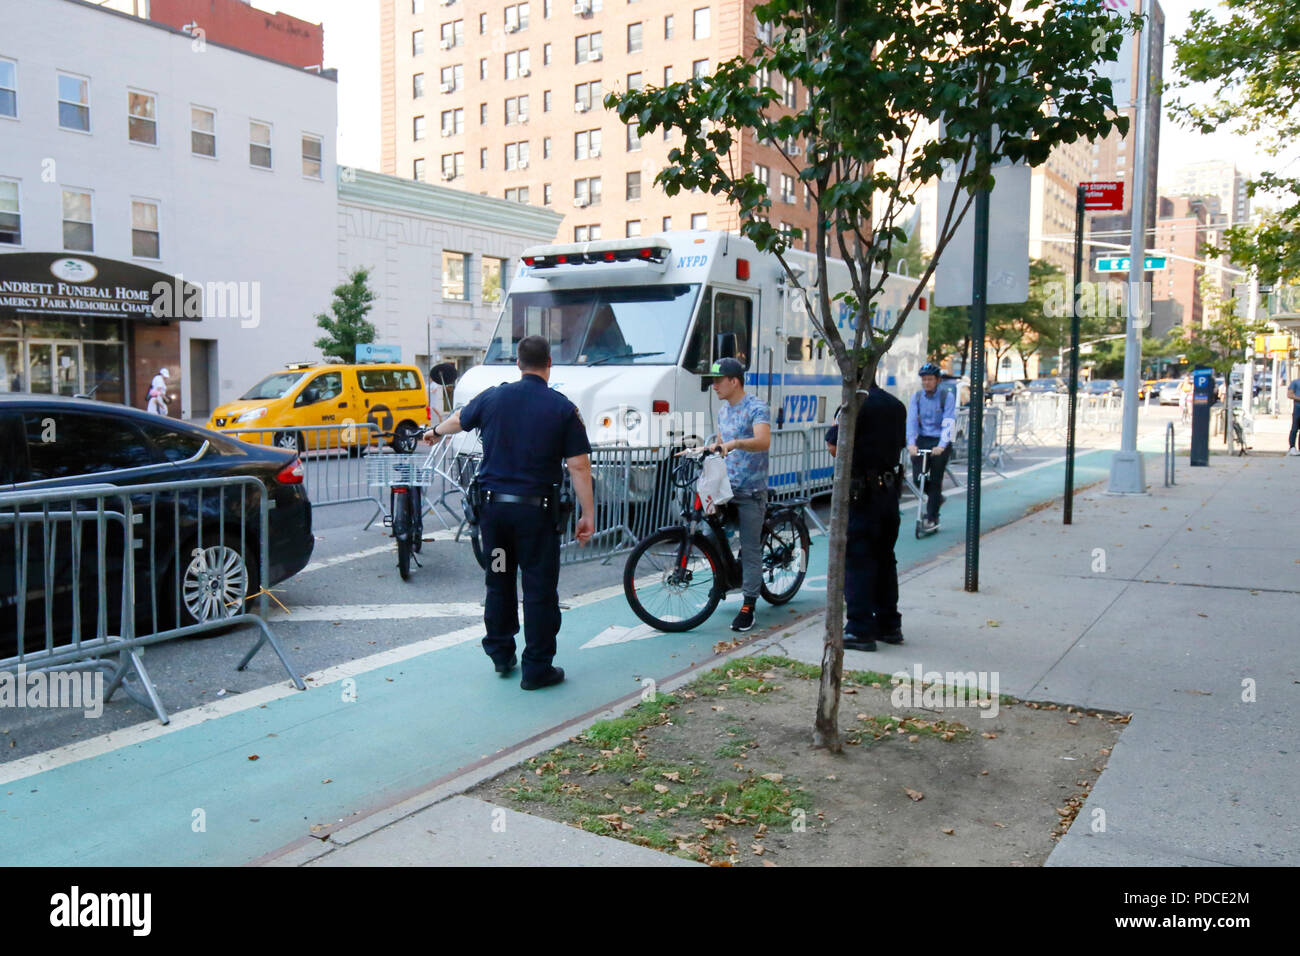 New York, NY, USA. 8th August, 2018.  Police direct a cyclist with a Class 2 electric bicycle--throttle assist--to a holding cage next to the Second Avenue bike lane in Manhattan. Electric bikes are currently illegal in New York State. NYC Mayor De Blasio has directed the Department of Transportation to begin allowing Class 1 pedal assisted electric bikes, while continuing the crackdown on all e bikes.  Most electric bike users are food delivery personnel. Stock Photo